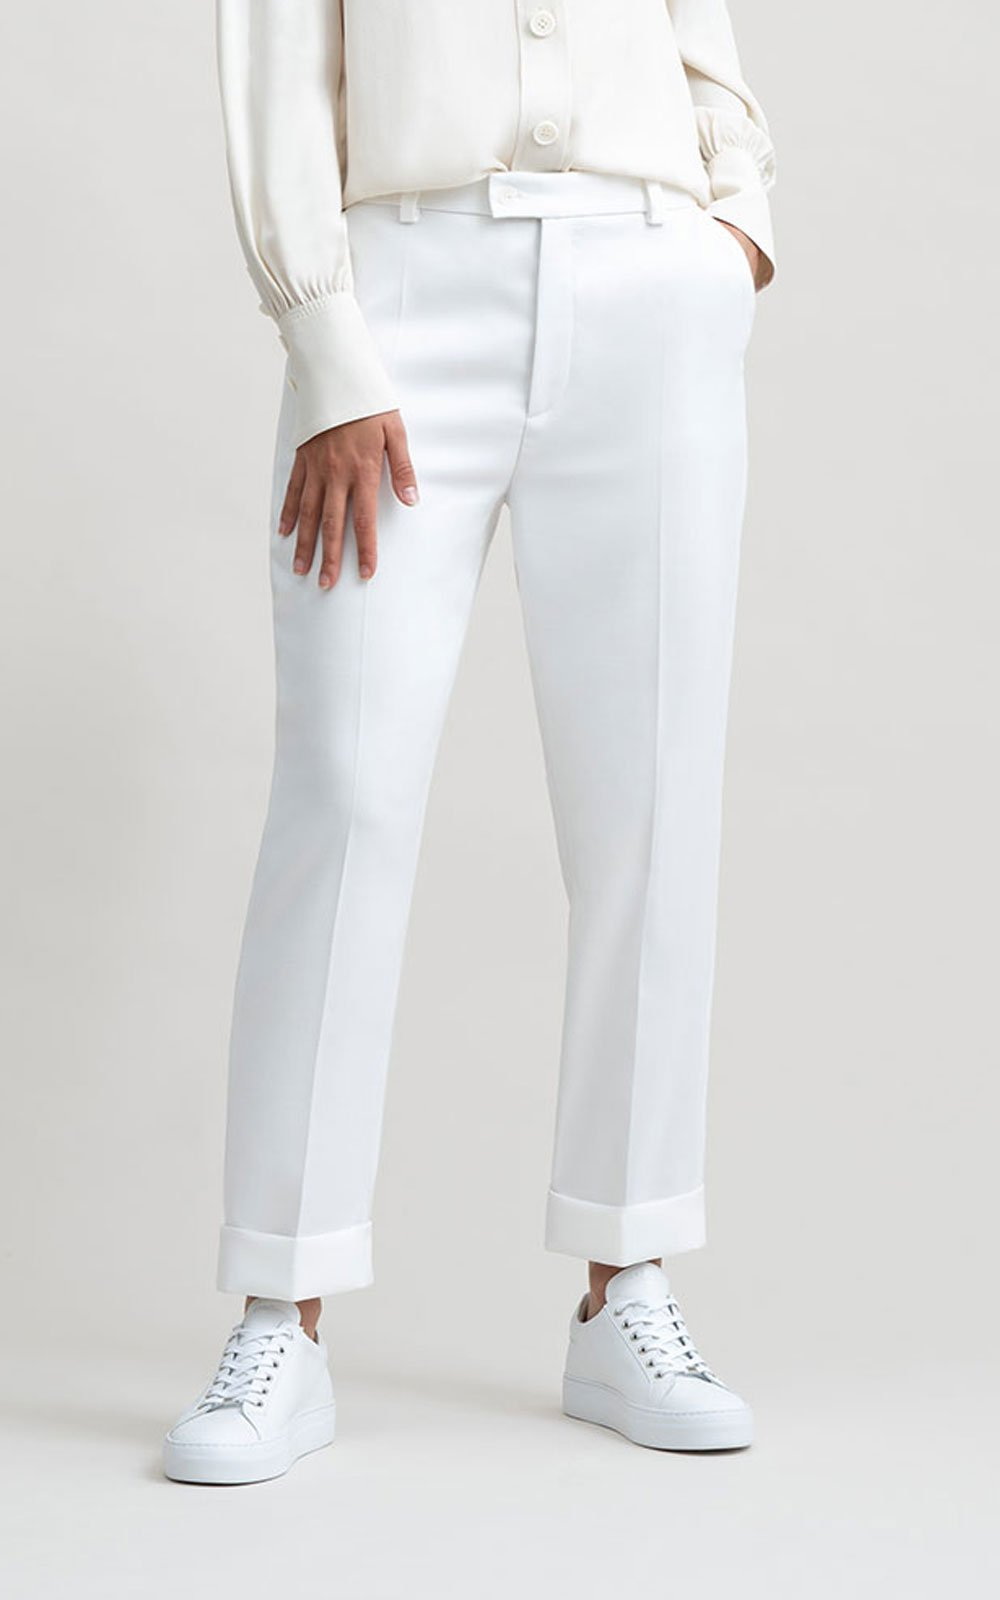 The Make White pant